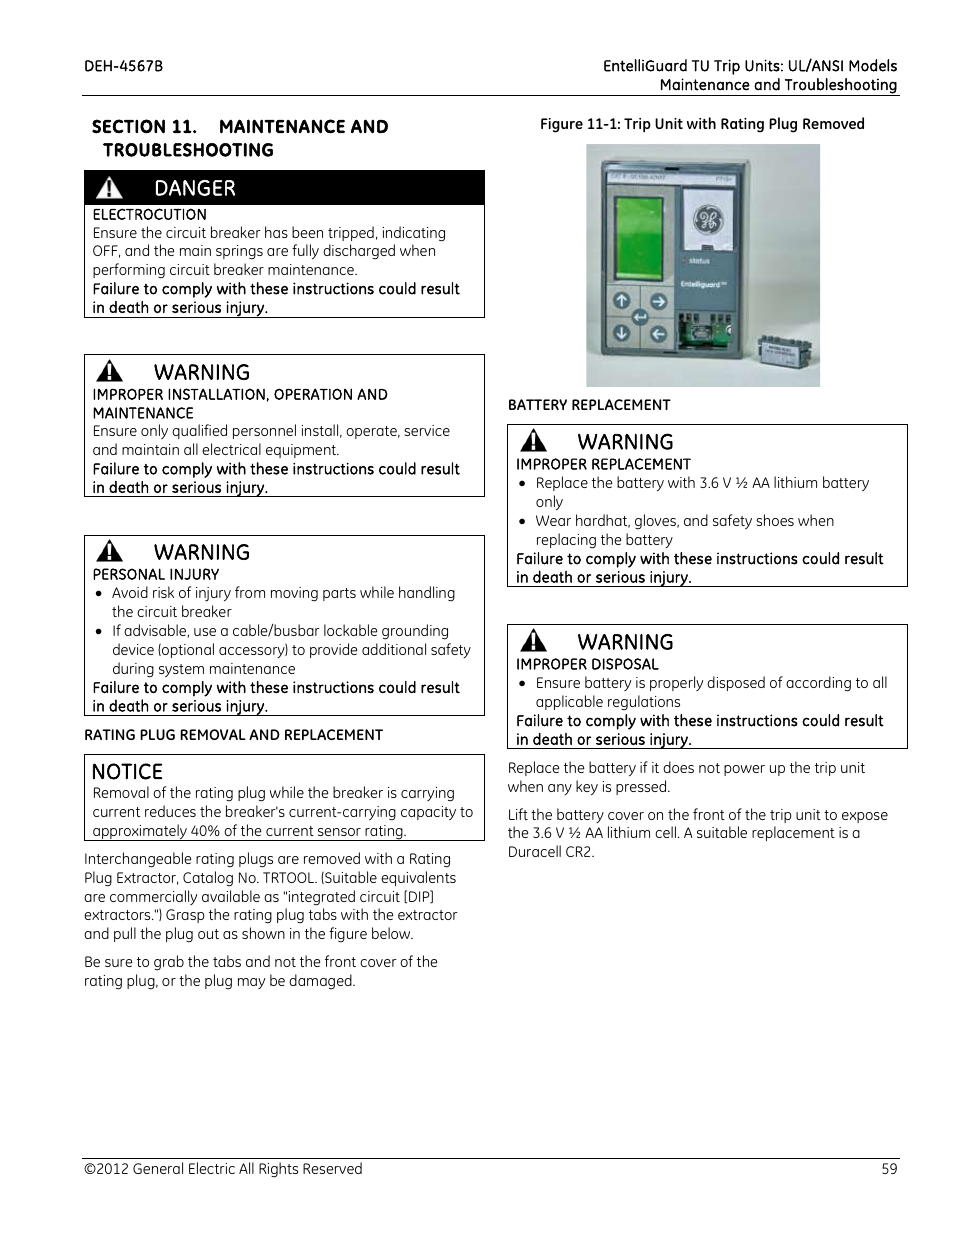 Section 11 Maintenance And Troubleshooting Danger Electrocution Tripping Unit Of Circuit Breaker Warning Improper Installation